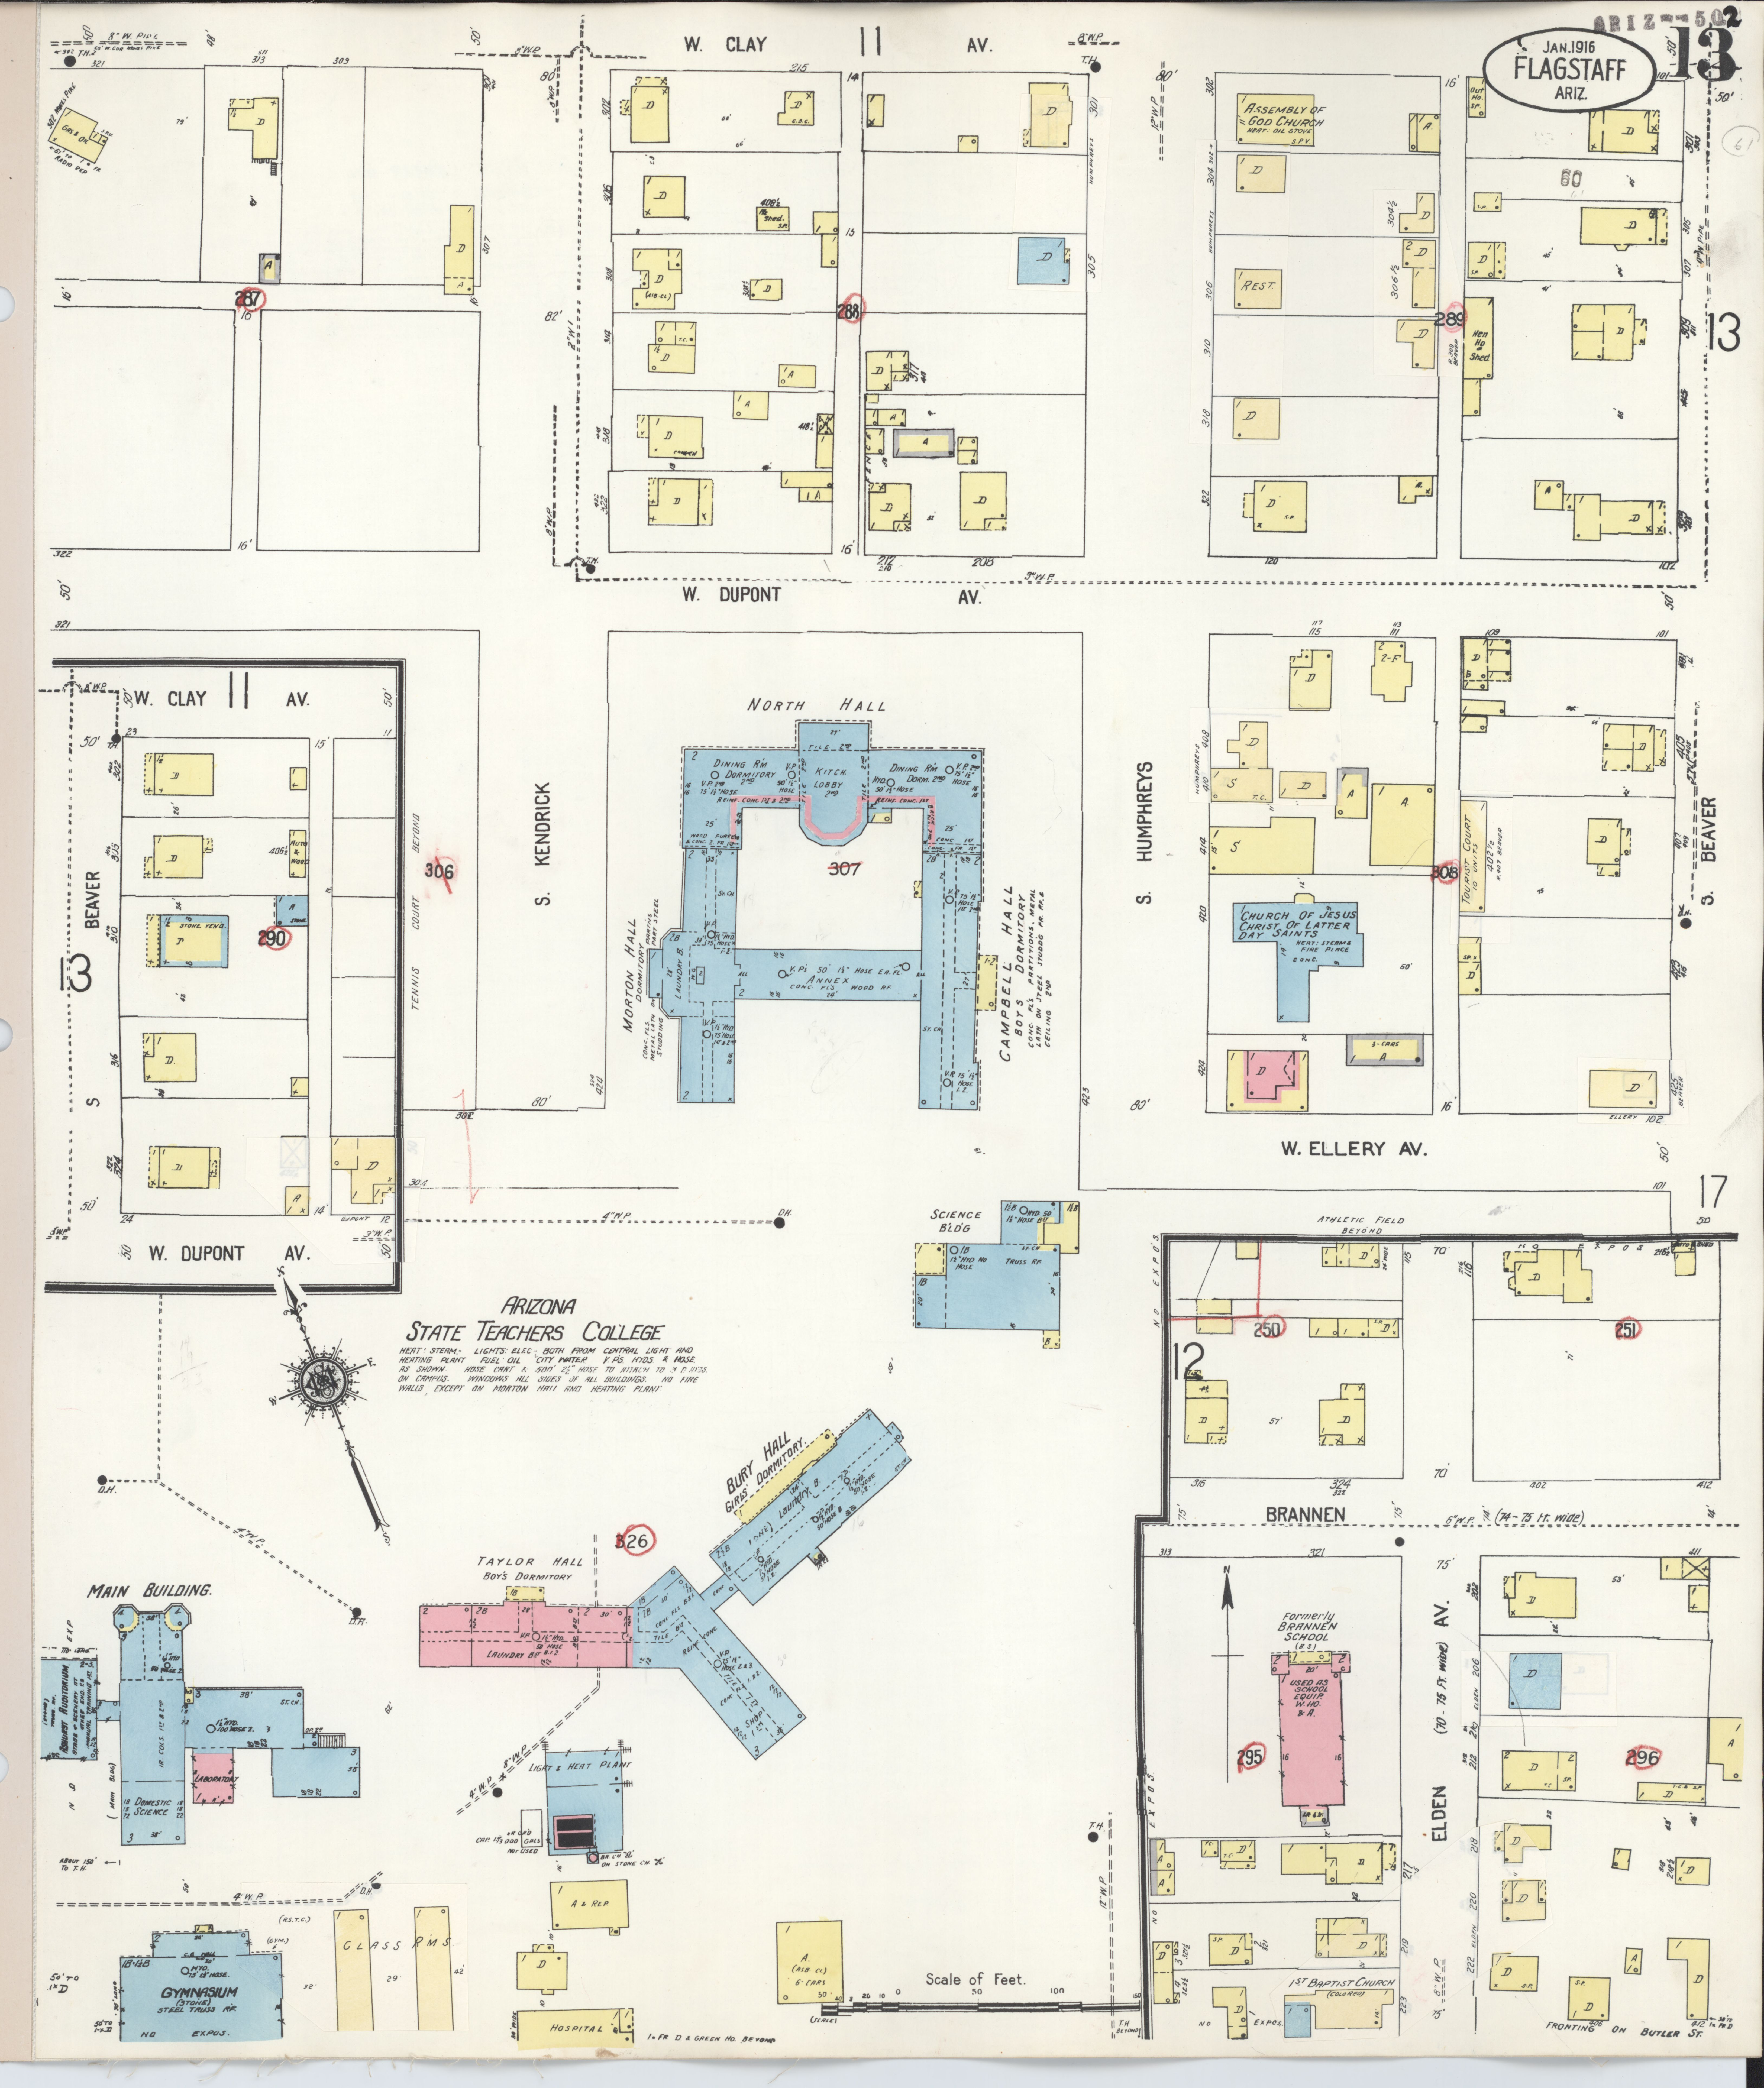 File Sanborn Fire Insurance Map from Flagstaff Coconino County